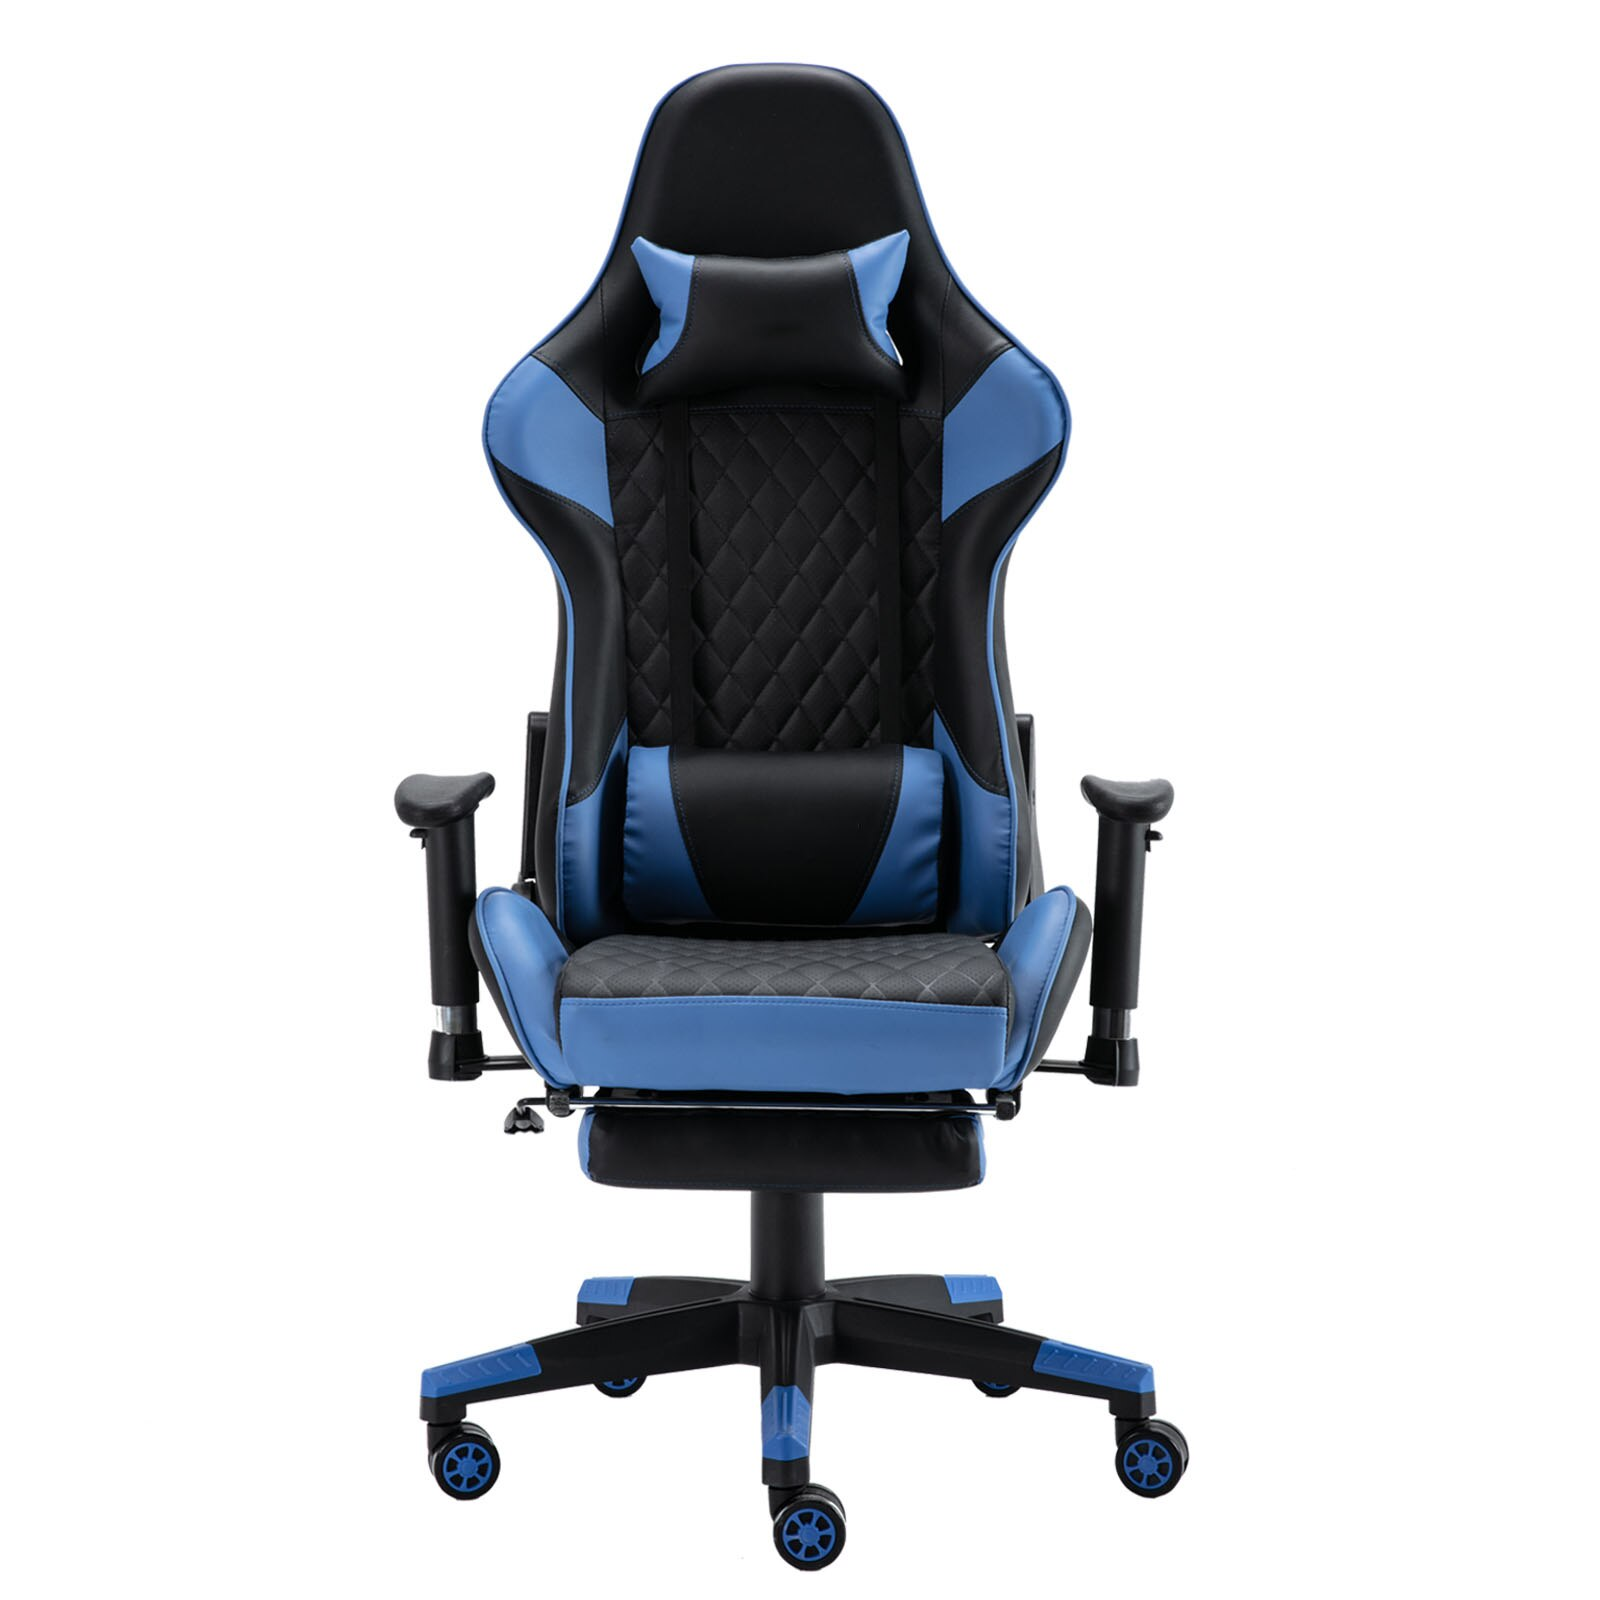 H9c7fc2649f7f4bbeab85dff9ffd14a53u - Gaming Chair Computer Armchair Adjustable Armrest And Footrest PVC Household Office Chair Ergonomic Computer Gamer Chair